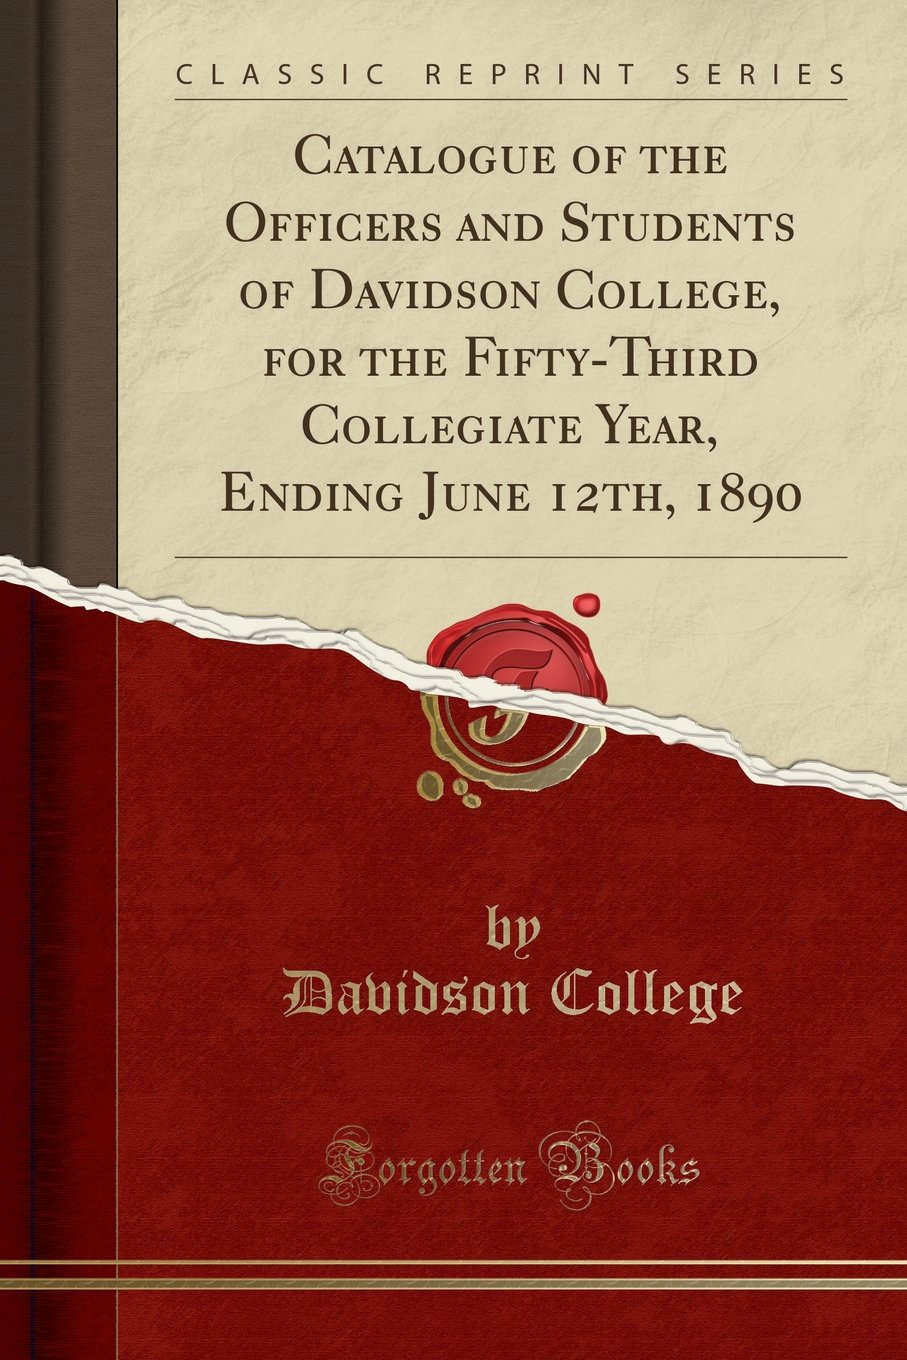 Catalogue of the Officers and Students of Davidson College, for the Fifty-Third Collegiate Year, Ending June 12th, 1890 (Classic Reprint) ebook